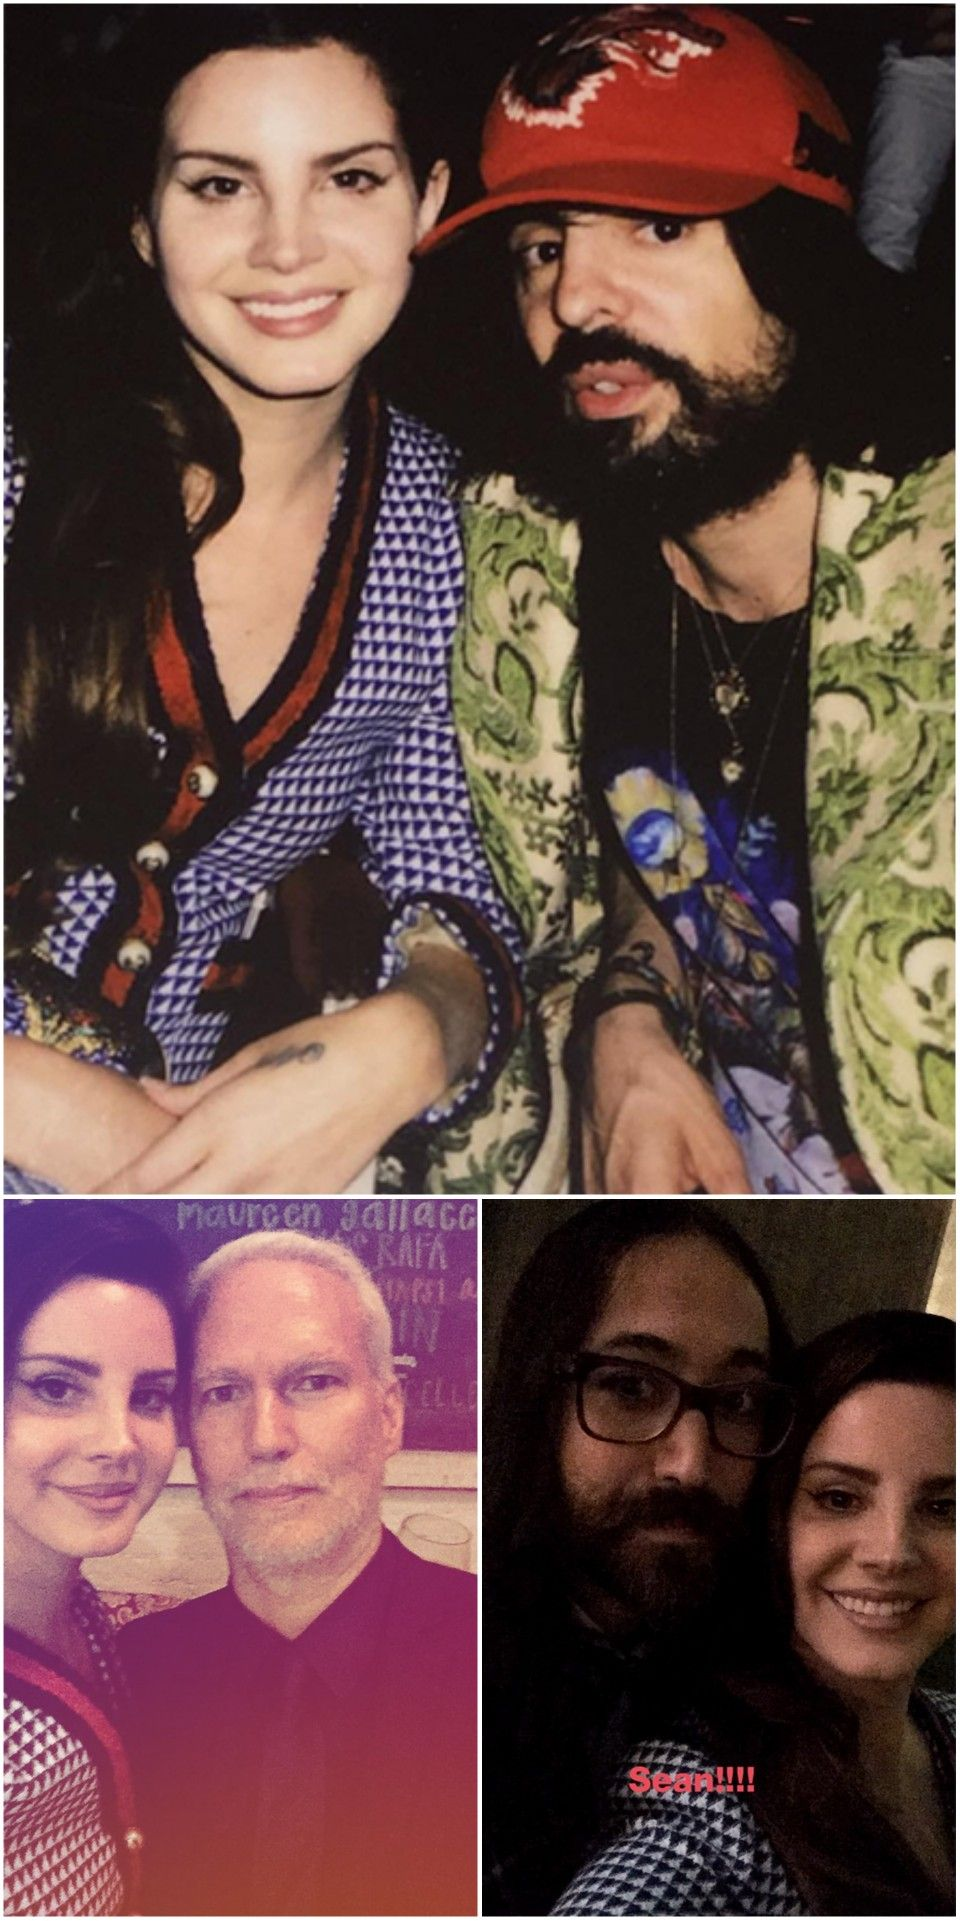 May 2, 2017: Lana Del Rey posted these photos on her Instagram story. She's with Alessandro Michele, Klaus Biesenbach and Sean Lennon at Gucci's fragrance launch party in New York City #LDR